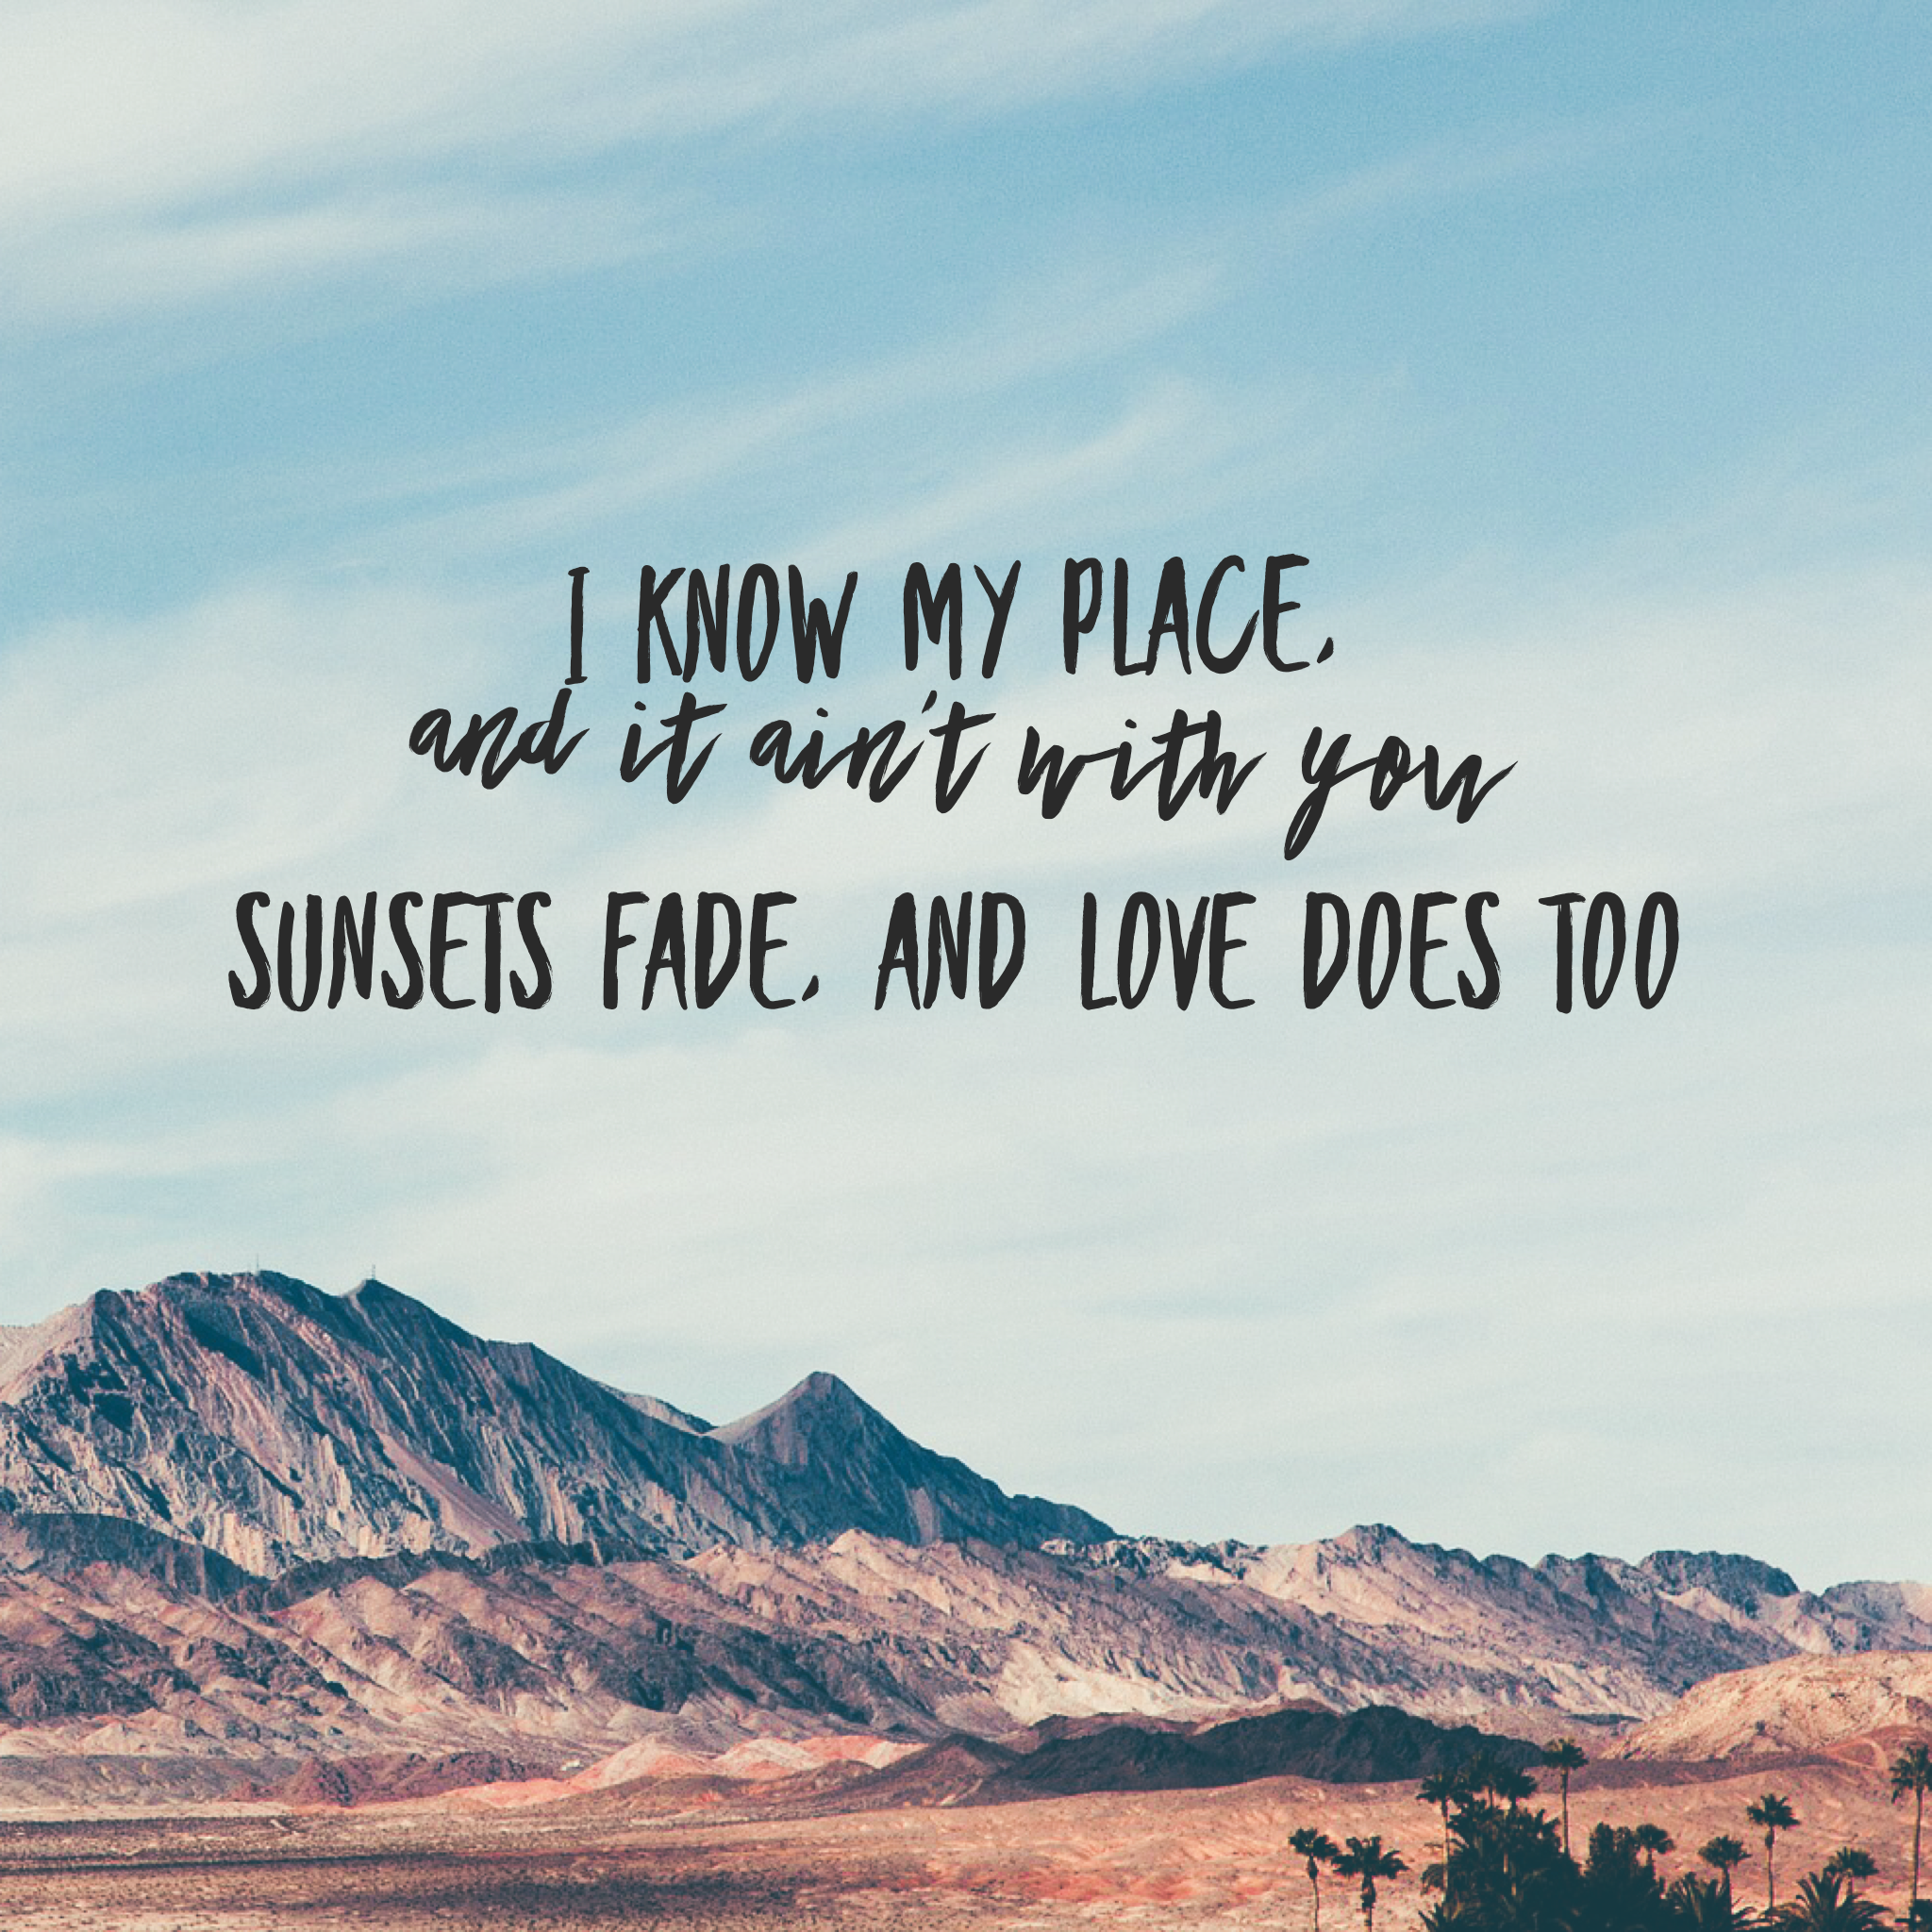 Sunsets Fade, And Love Does Too (Kacey Musgraves/ Space